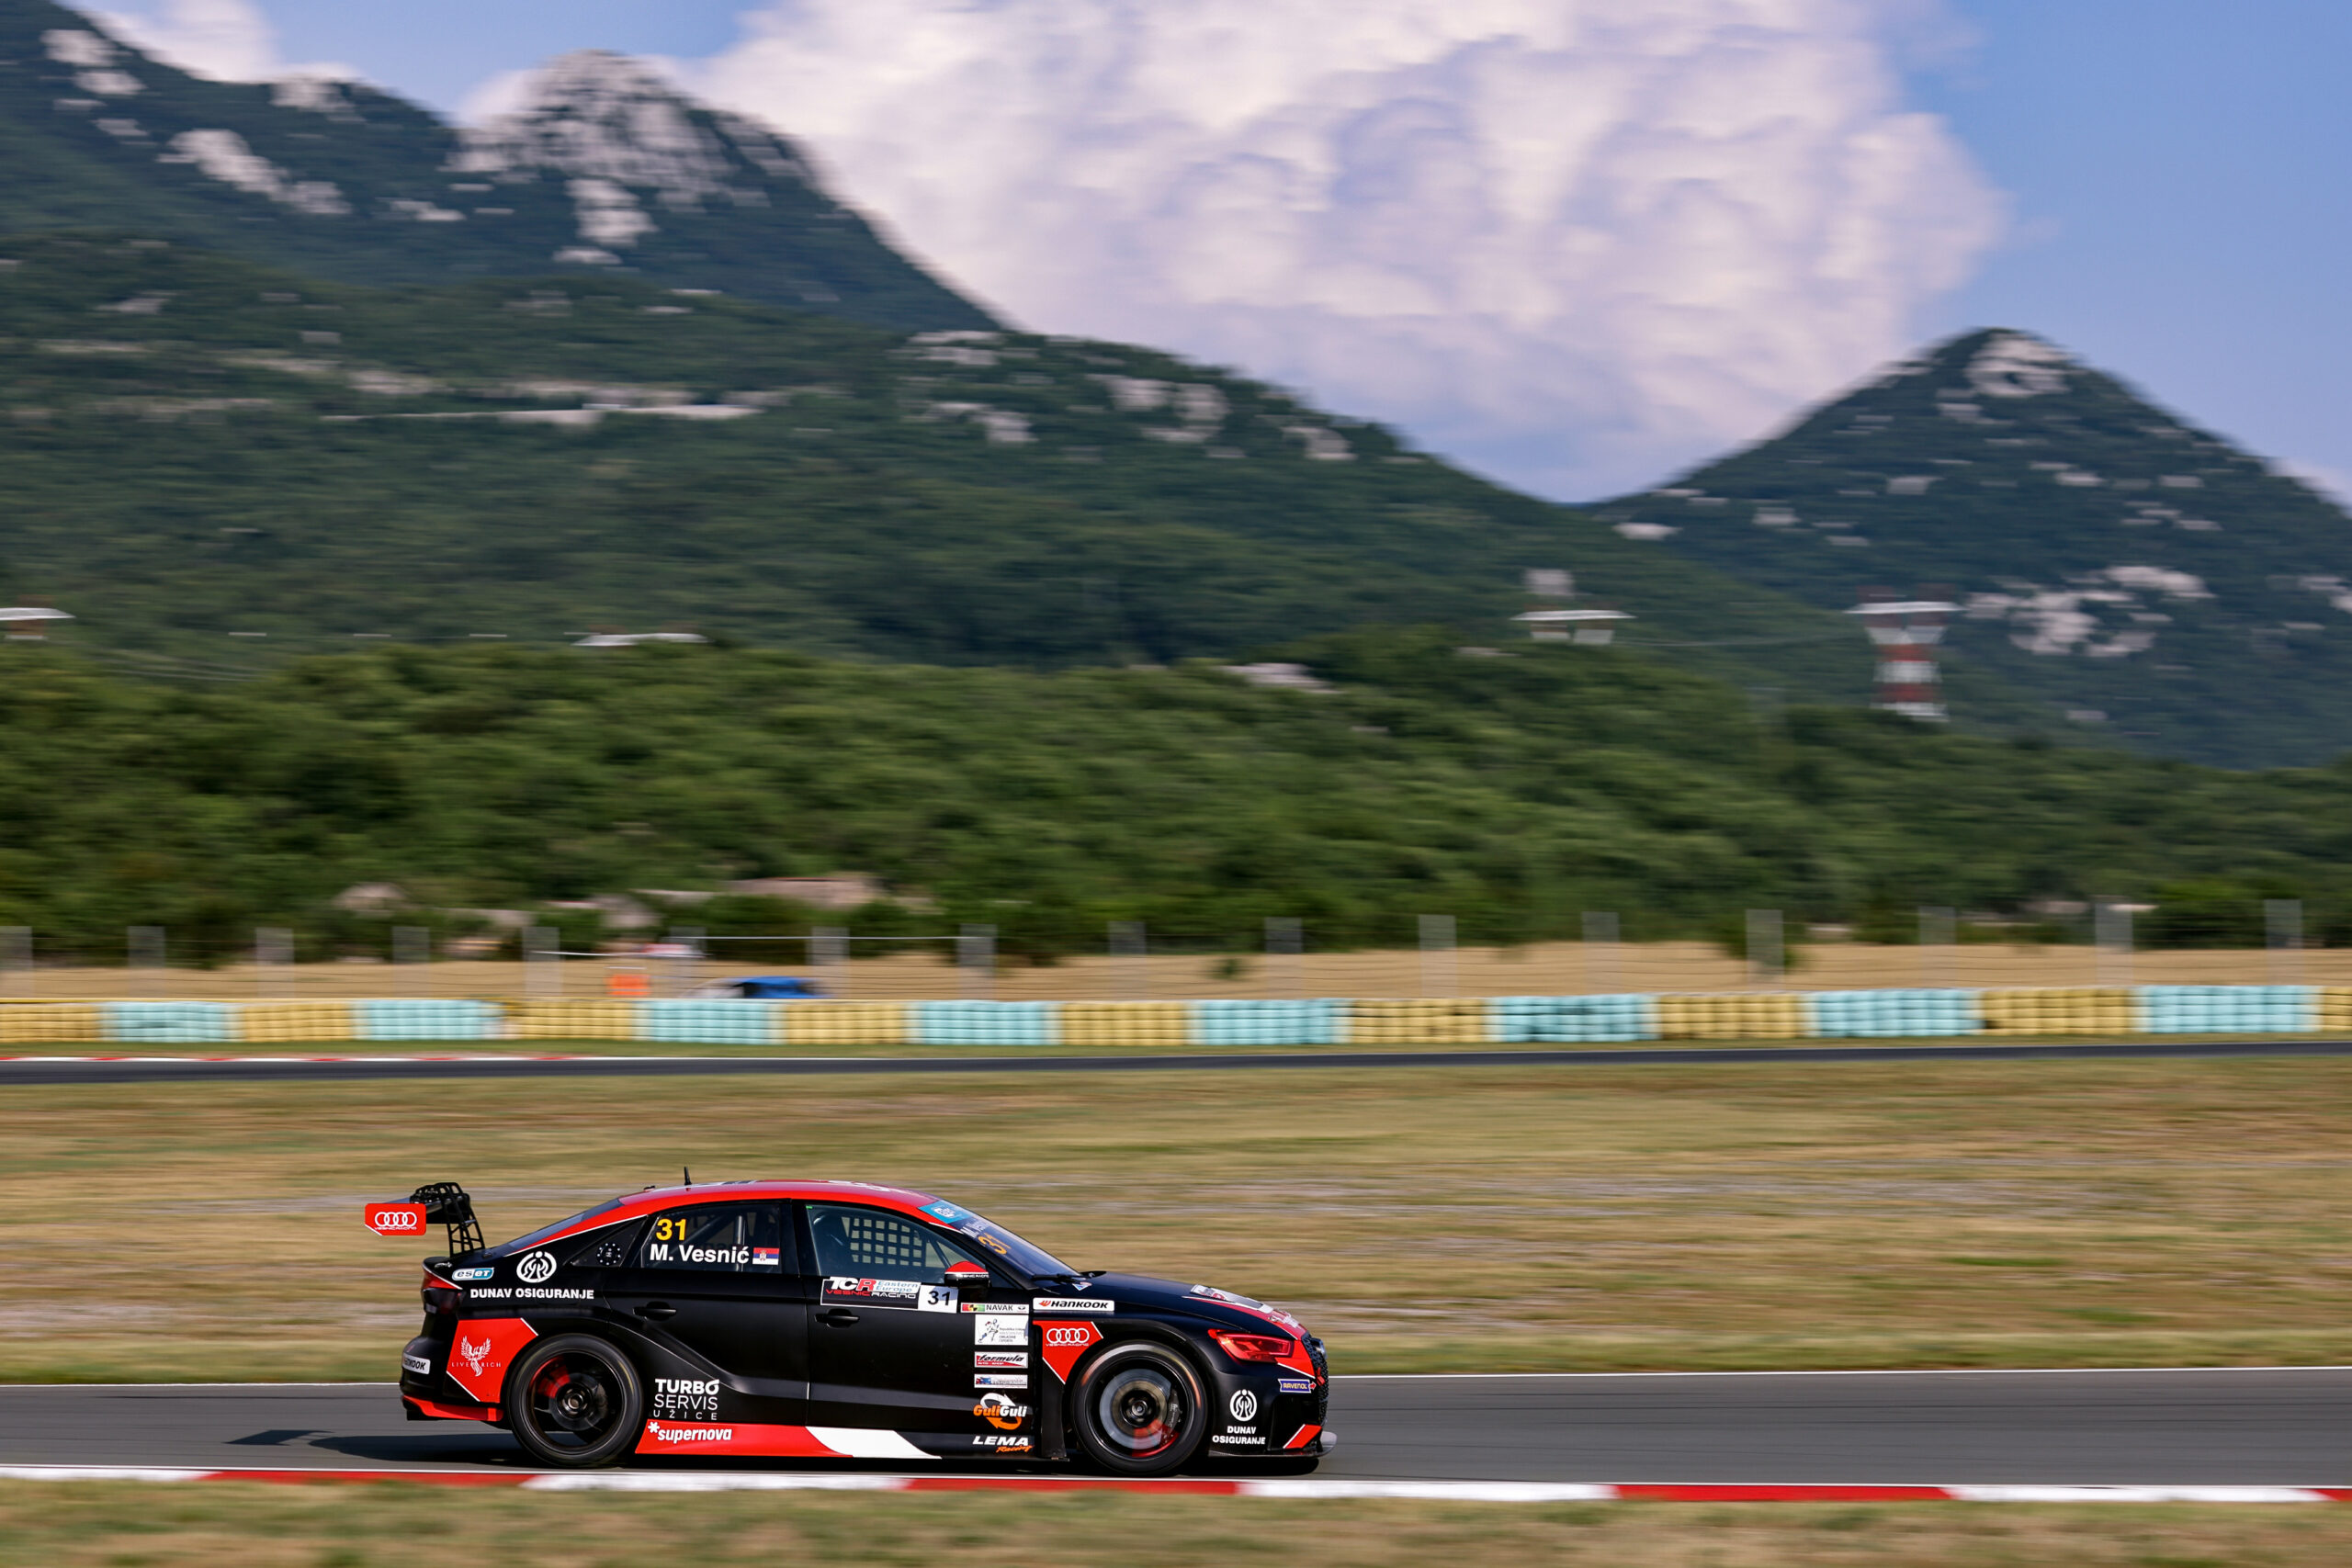 Vesnić took pole position for Race 1 and equalized record in number of qualifying victories